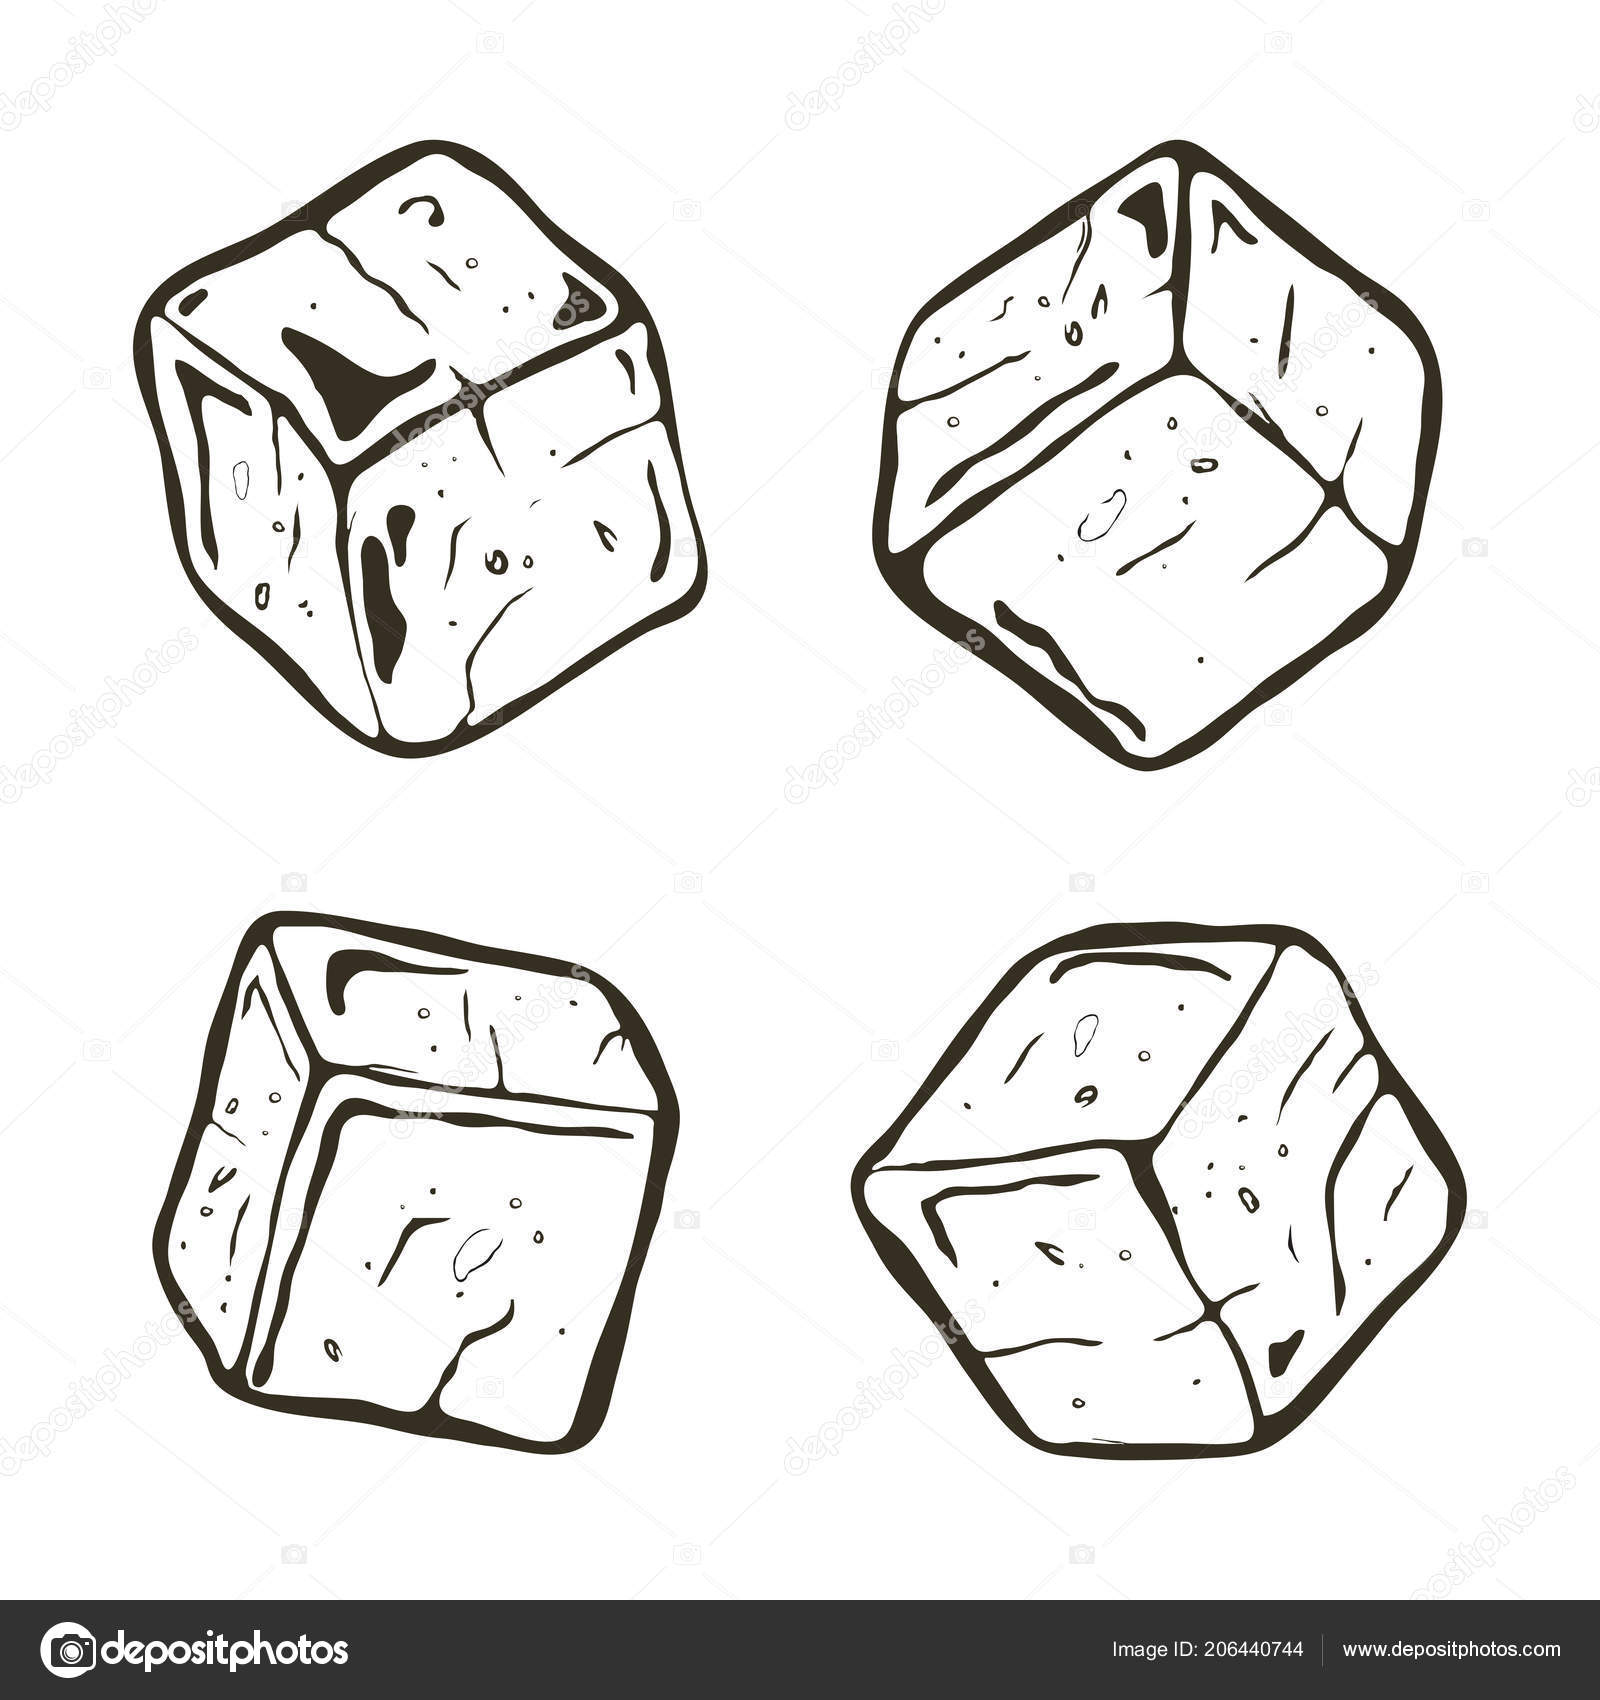 clipart black and white ice cubes vector black white ice cubes transparent ice cube chunks isolated stock vector c dmstudio 206440744 https depositphotos com 206440744 stock illustration vector black white ice cubes html